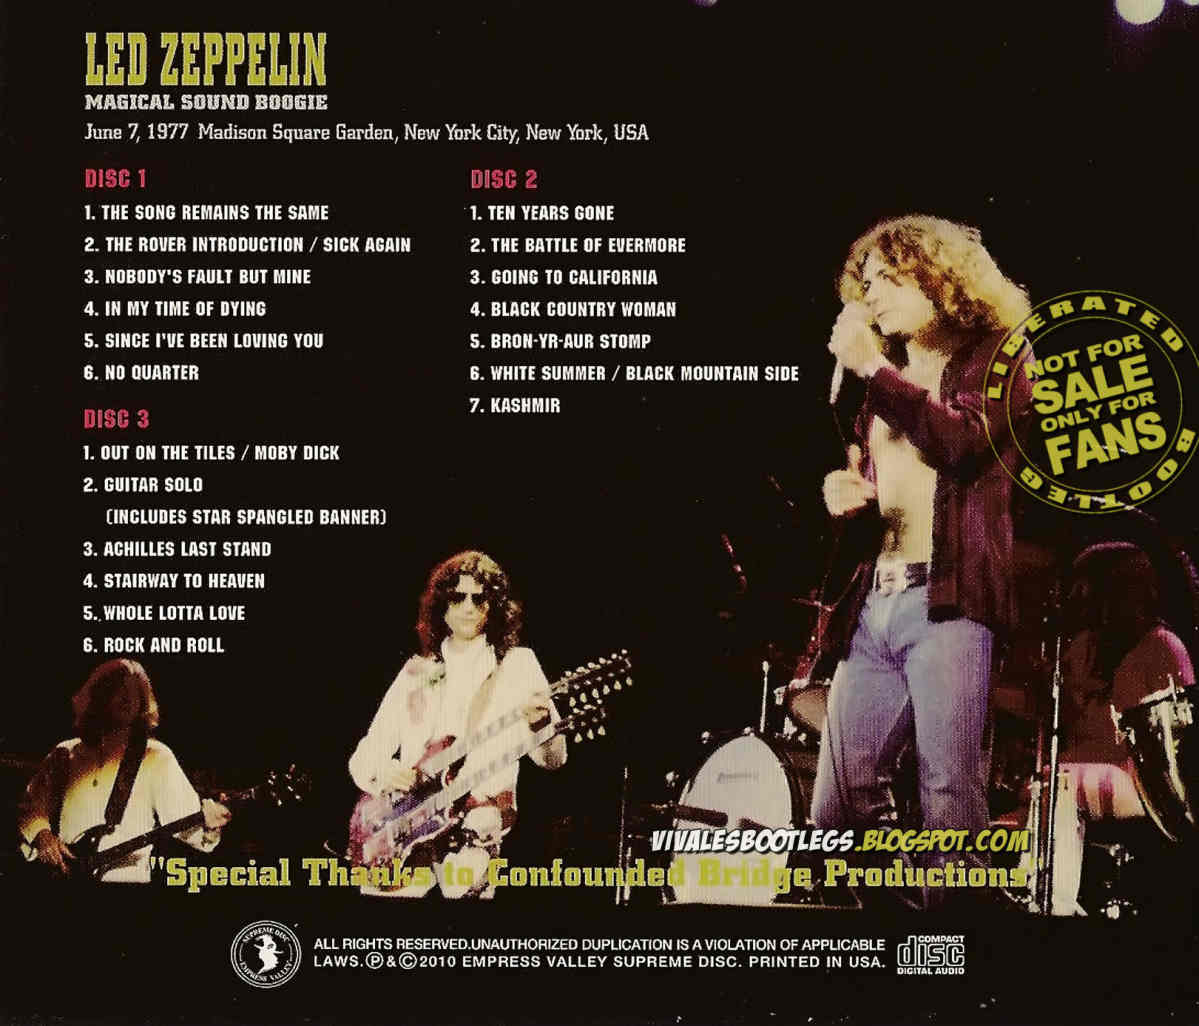 Led Zeppelin Bootlegs Mp3 1977 06 07 Madison Square Garden New York Ny Magical Sound